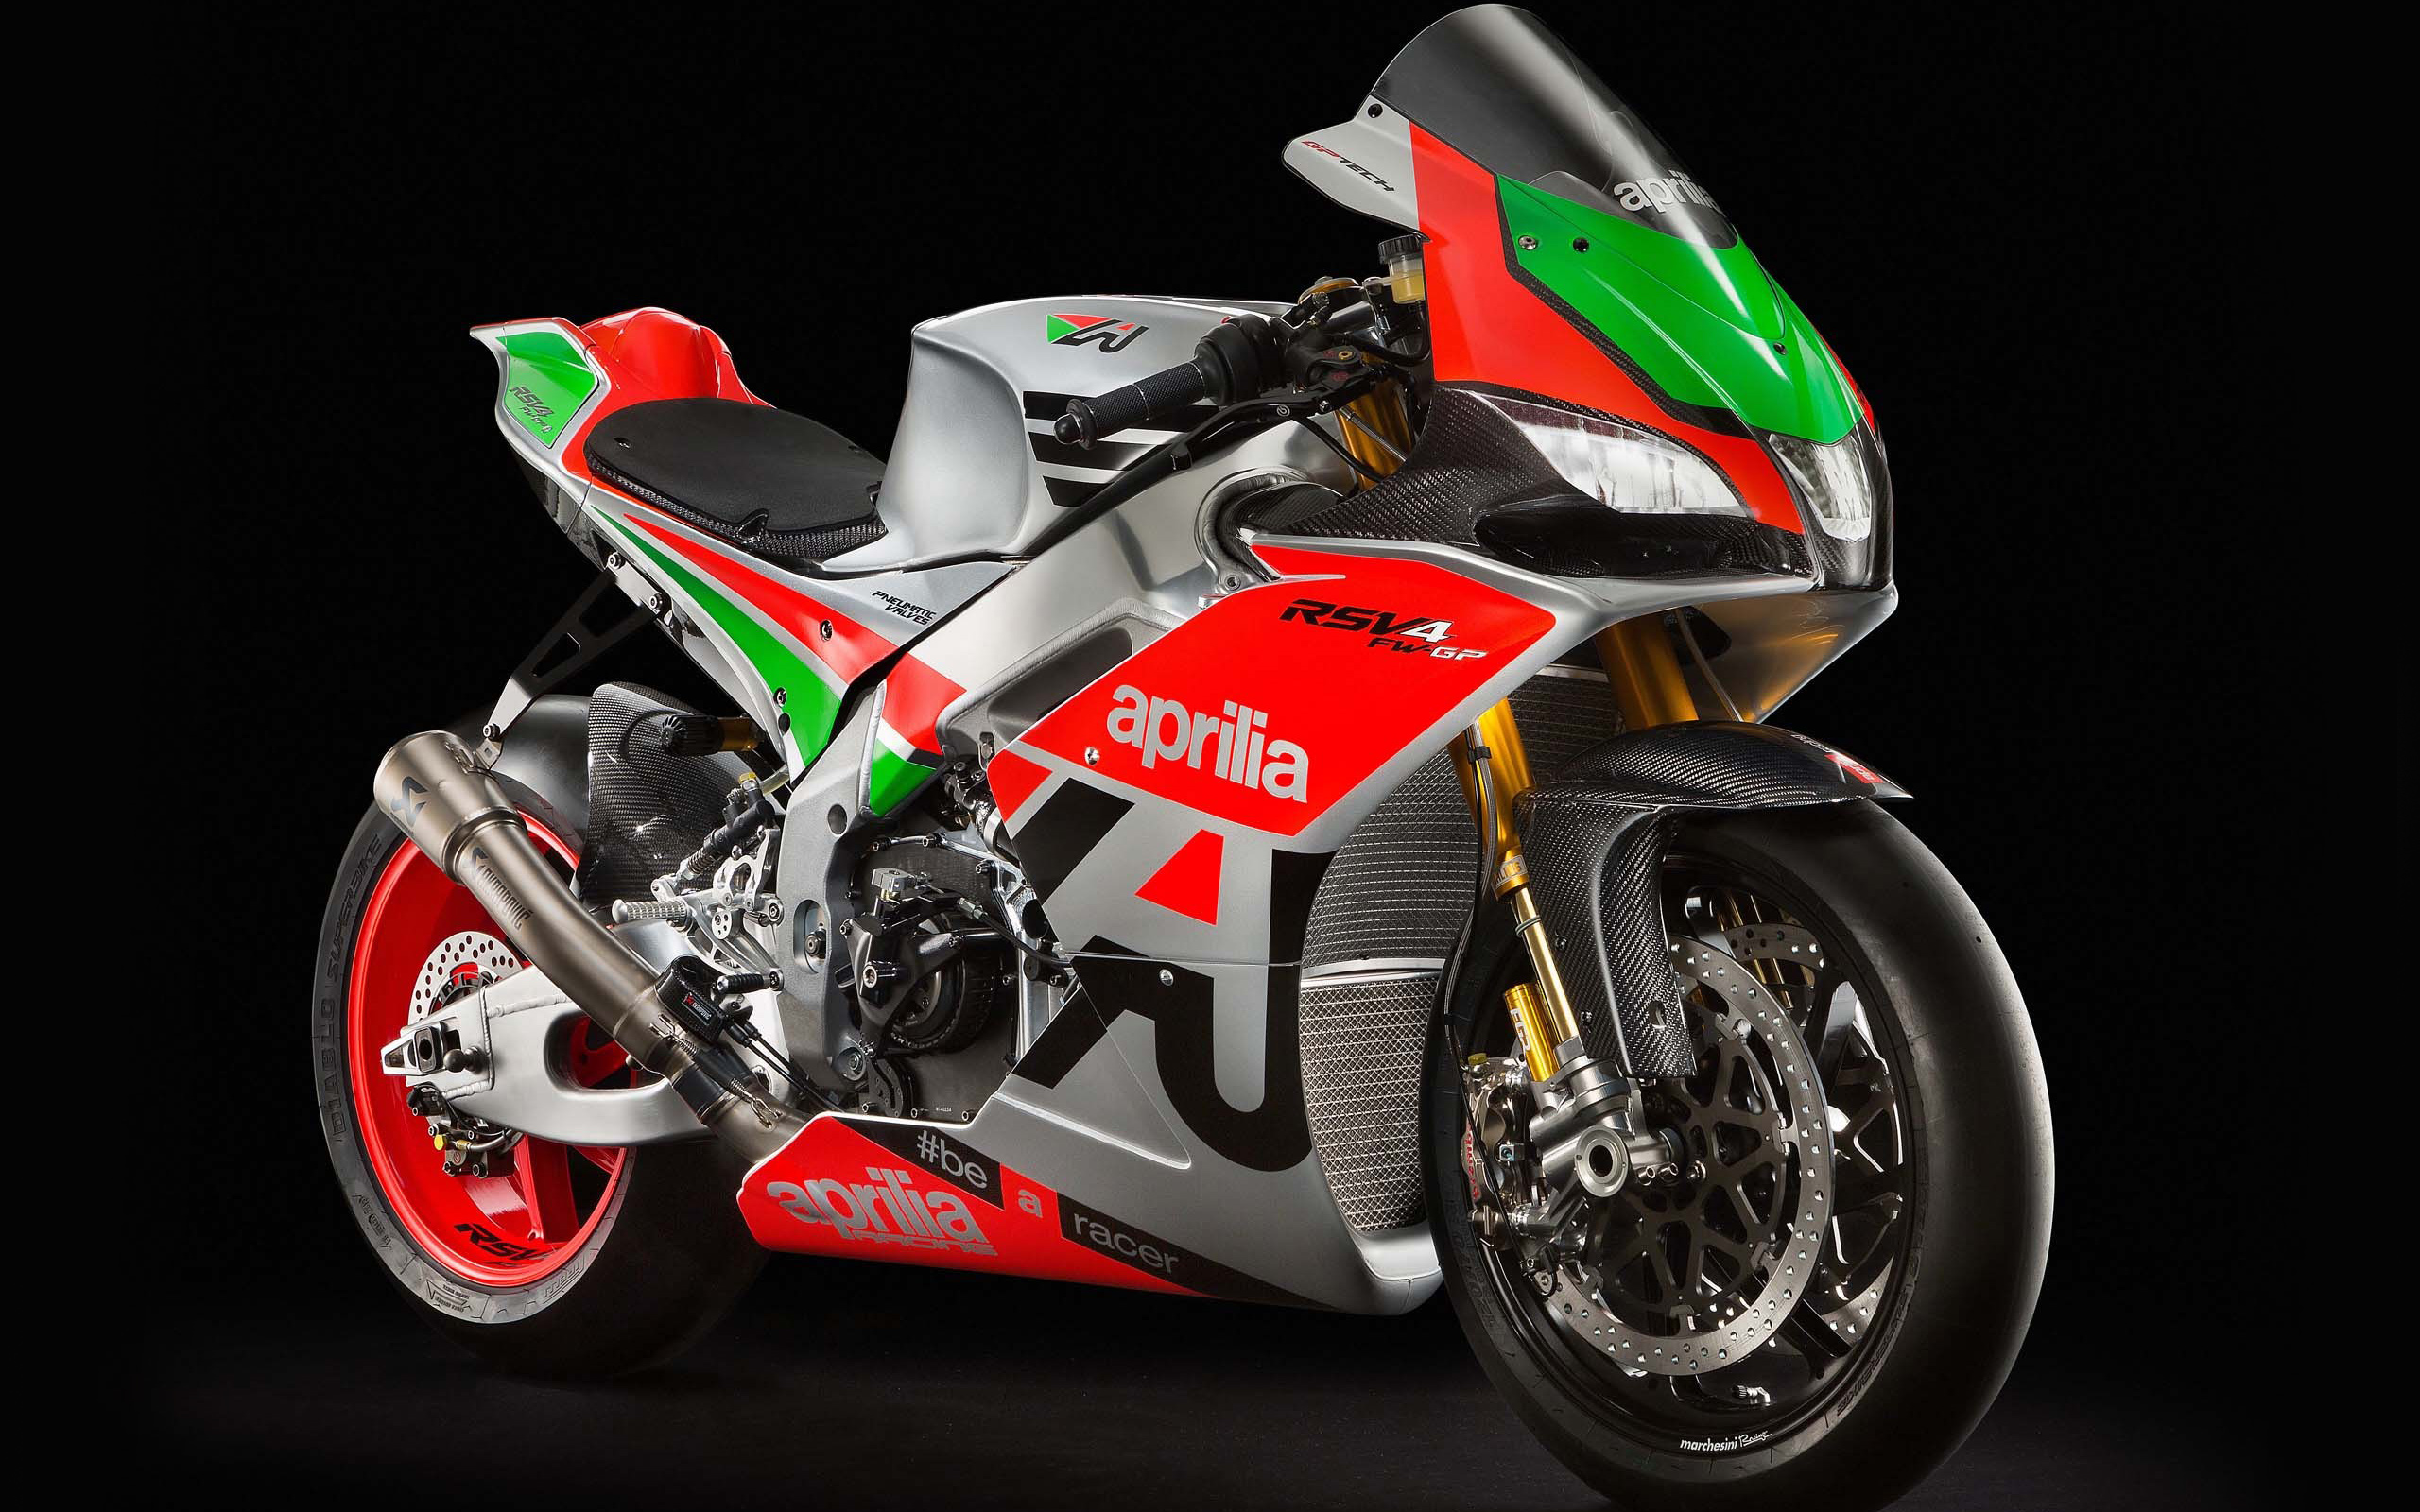 Aprilia RSV4 Wallpapers and Background Images   stmednet 2560x1600